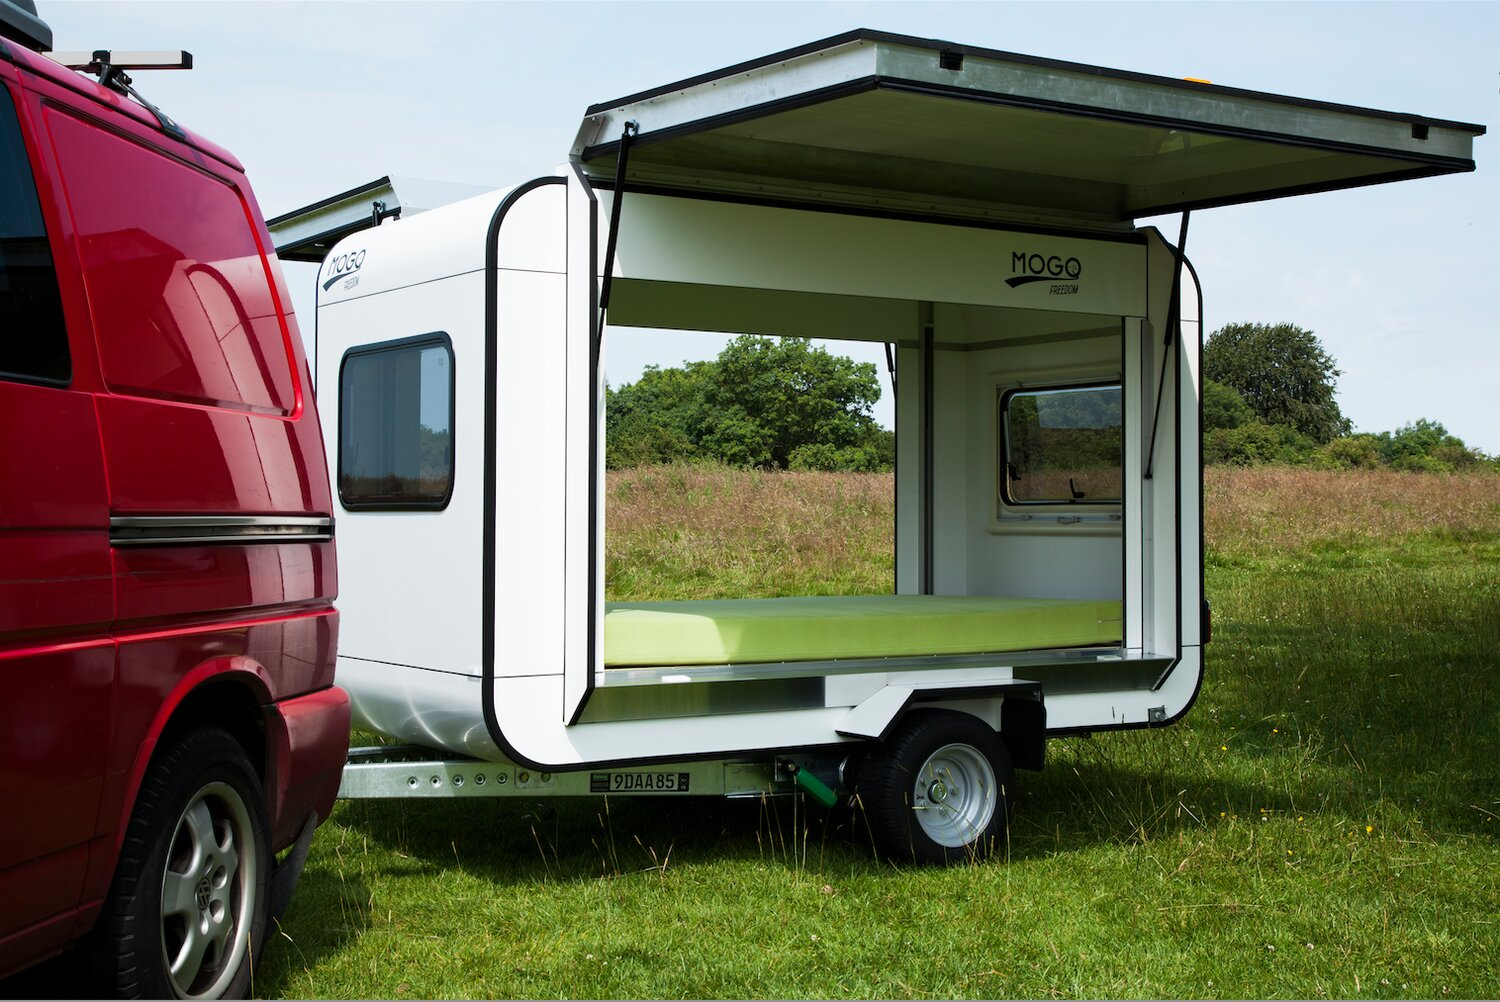 Diy Hard Floor Camper Trailer Plans Mogo Freedom A Tiny Gull Wing Travel Trailer By Matjaz